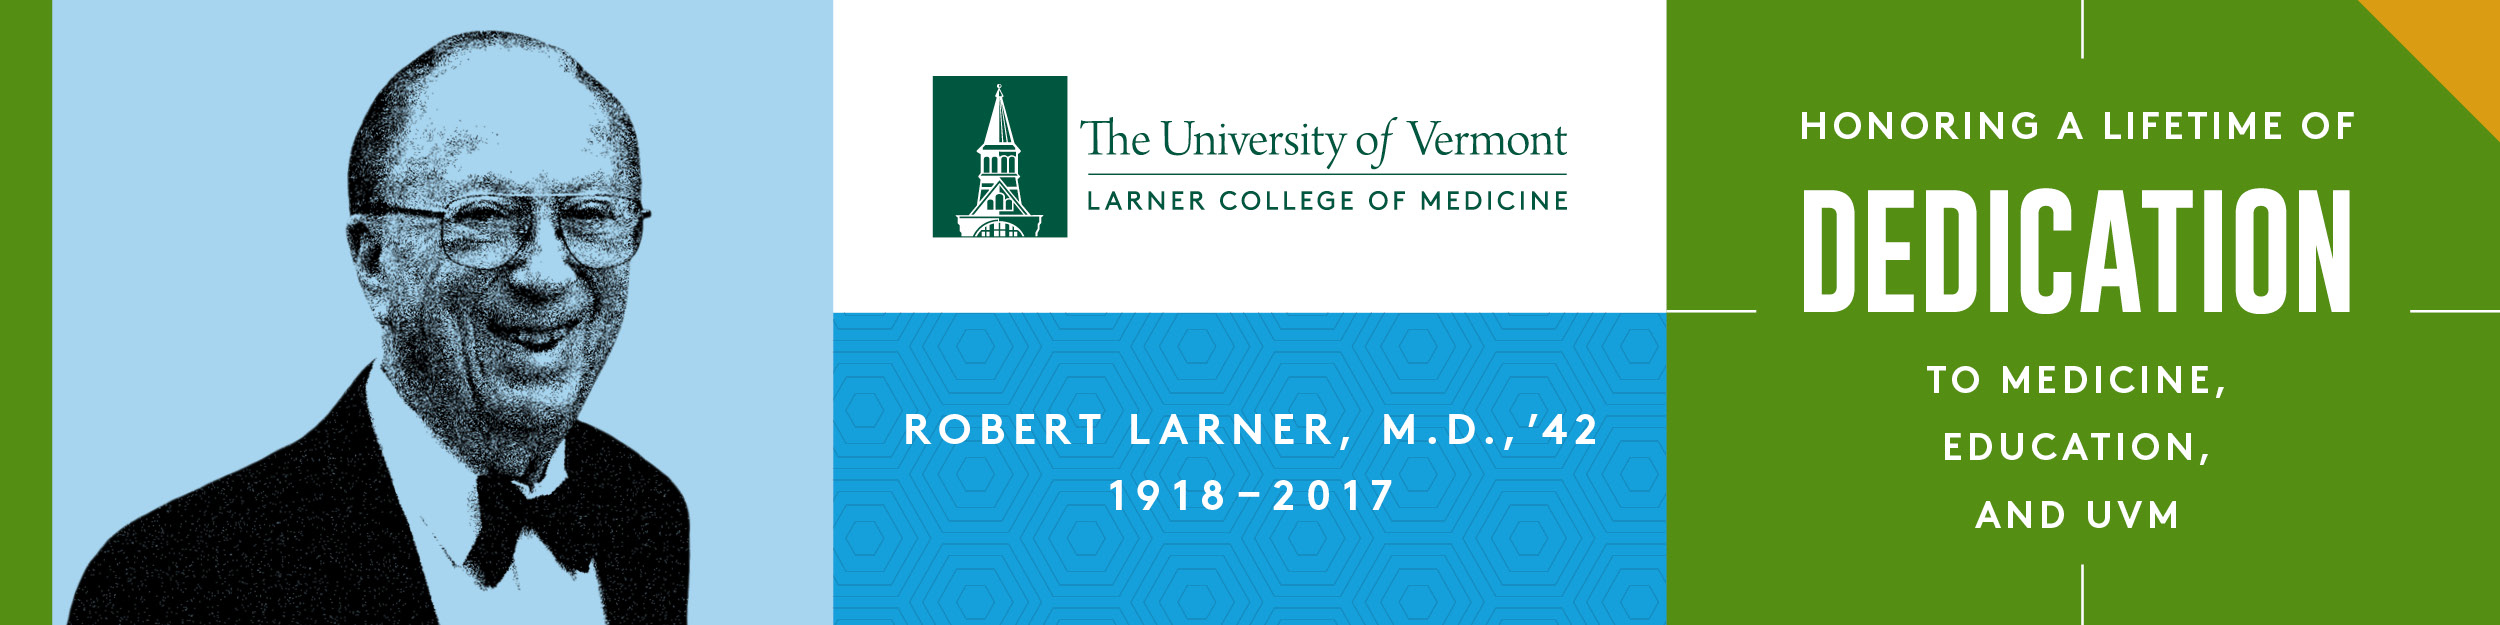 Robert Larner, M.D., '42: Honoring a lifetime of dedication to medicine, education, and UVM